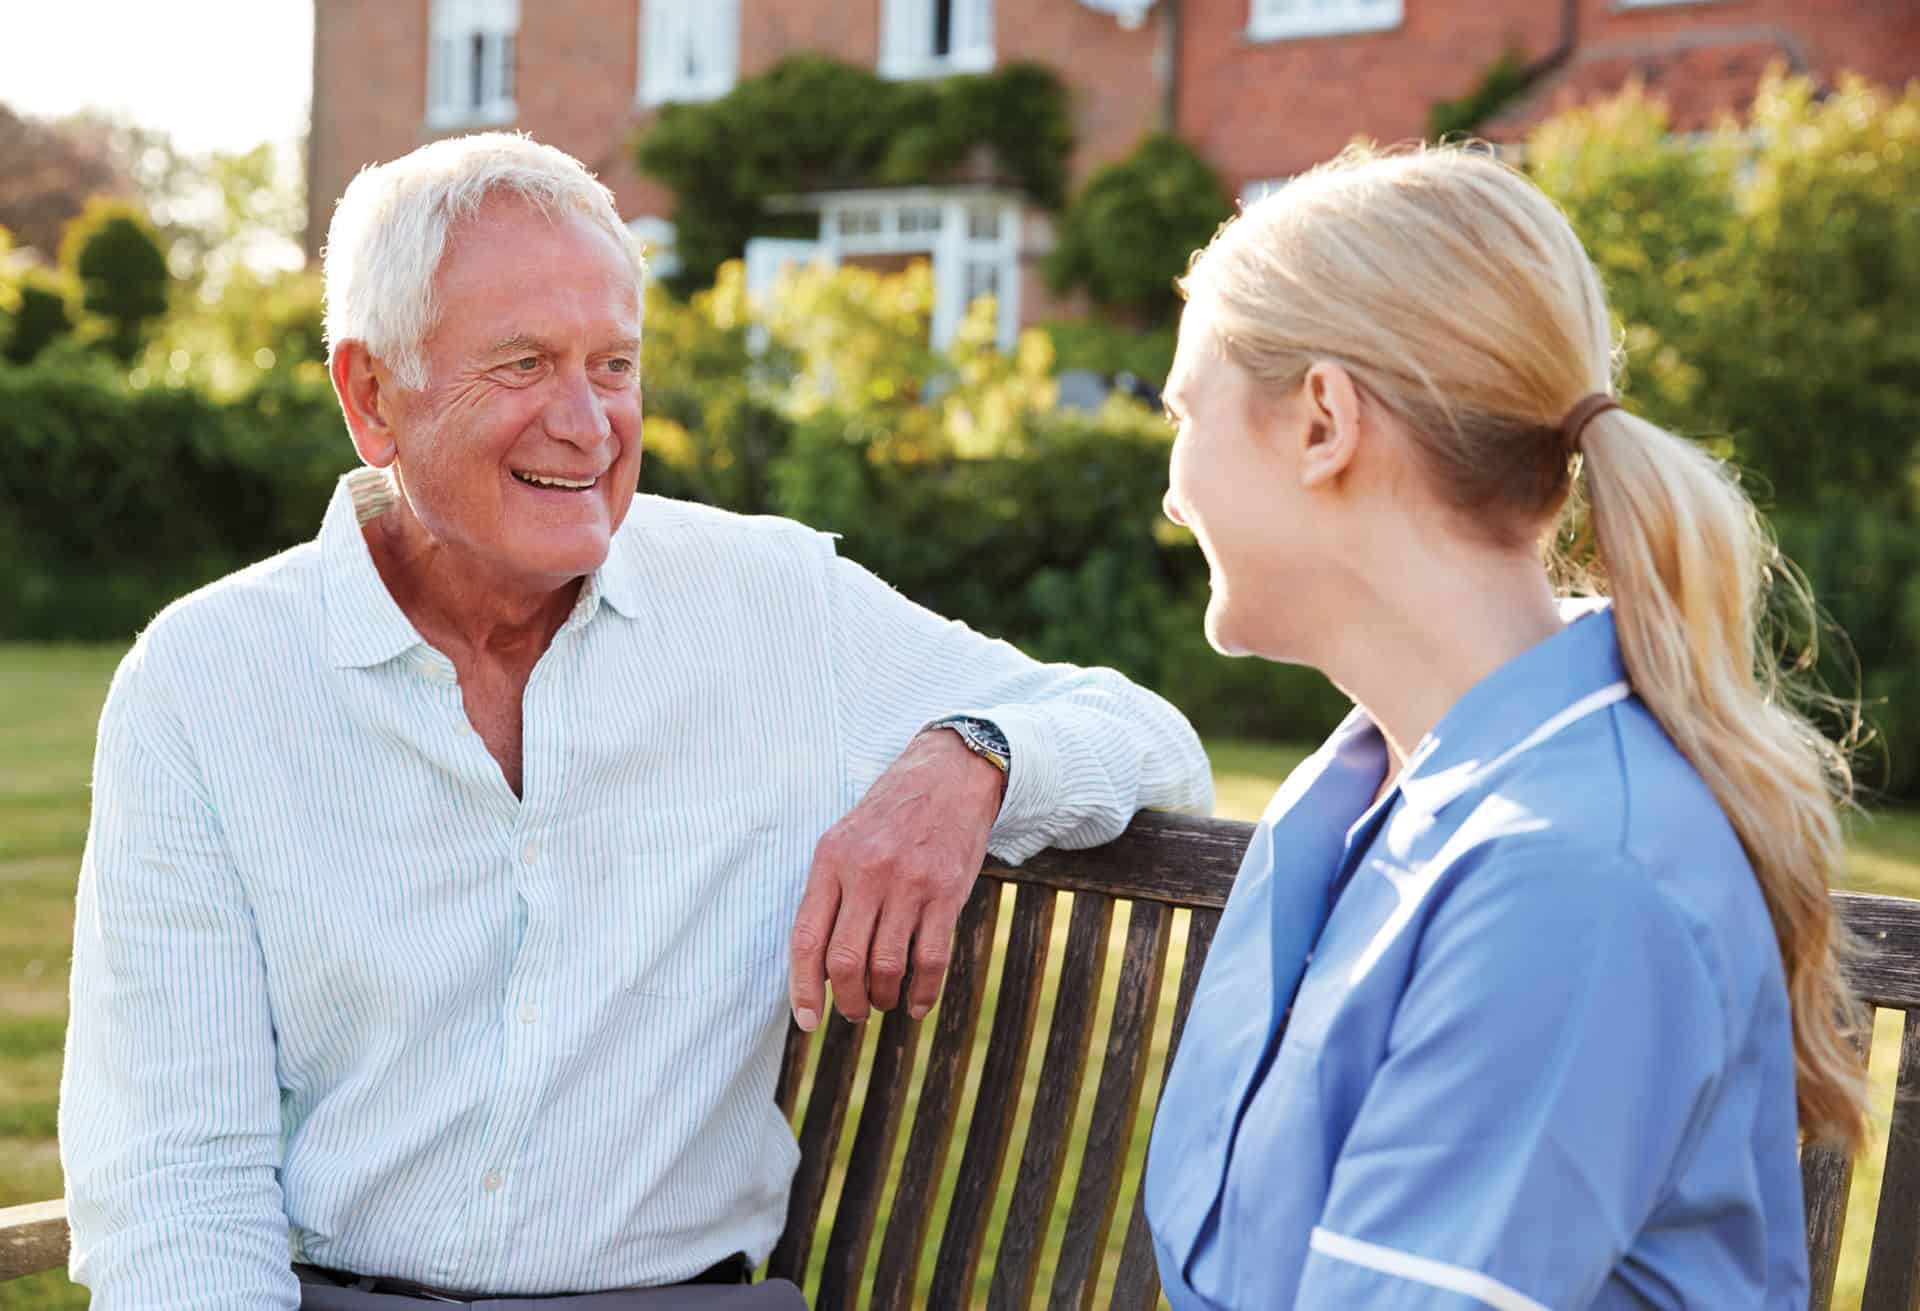 Senior man talking with a caregiver outside on bench.